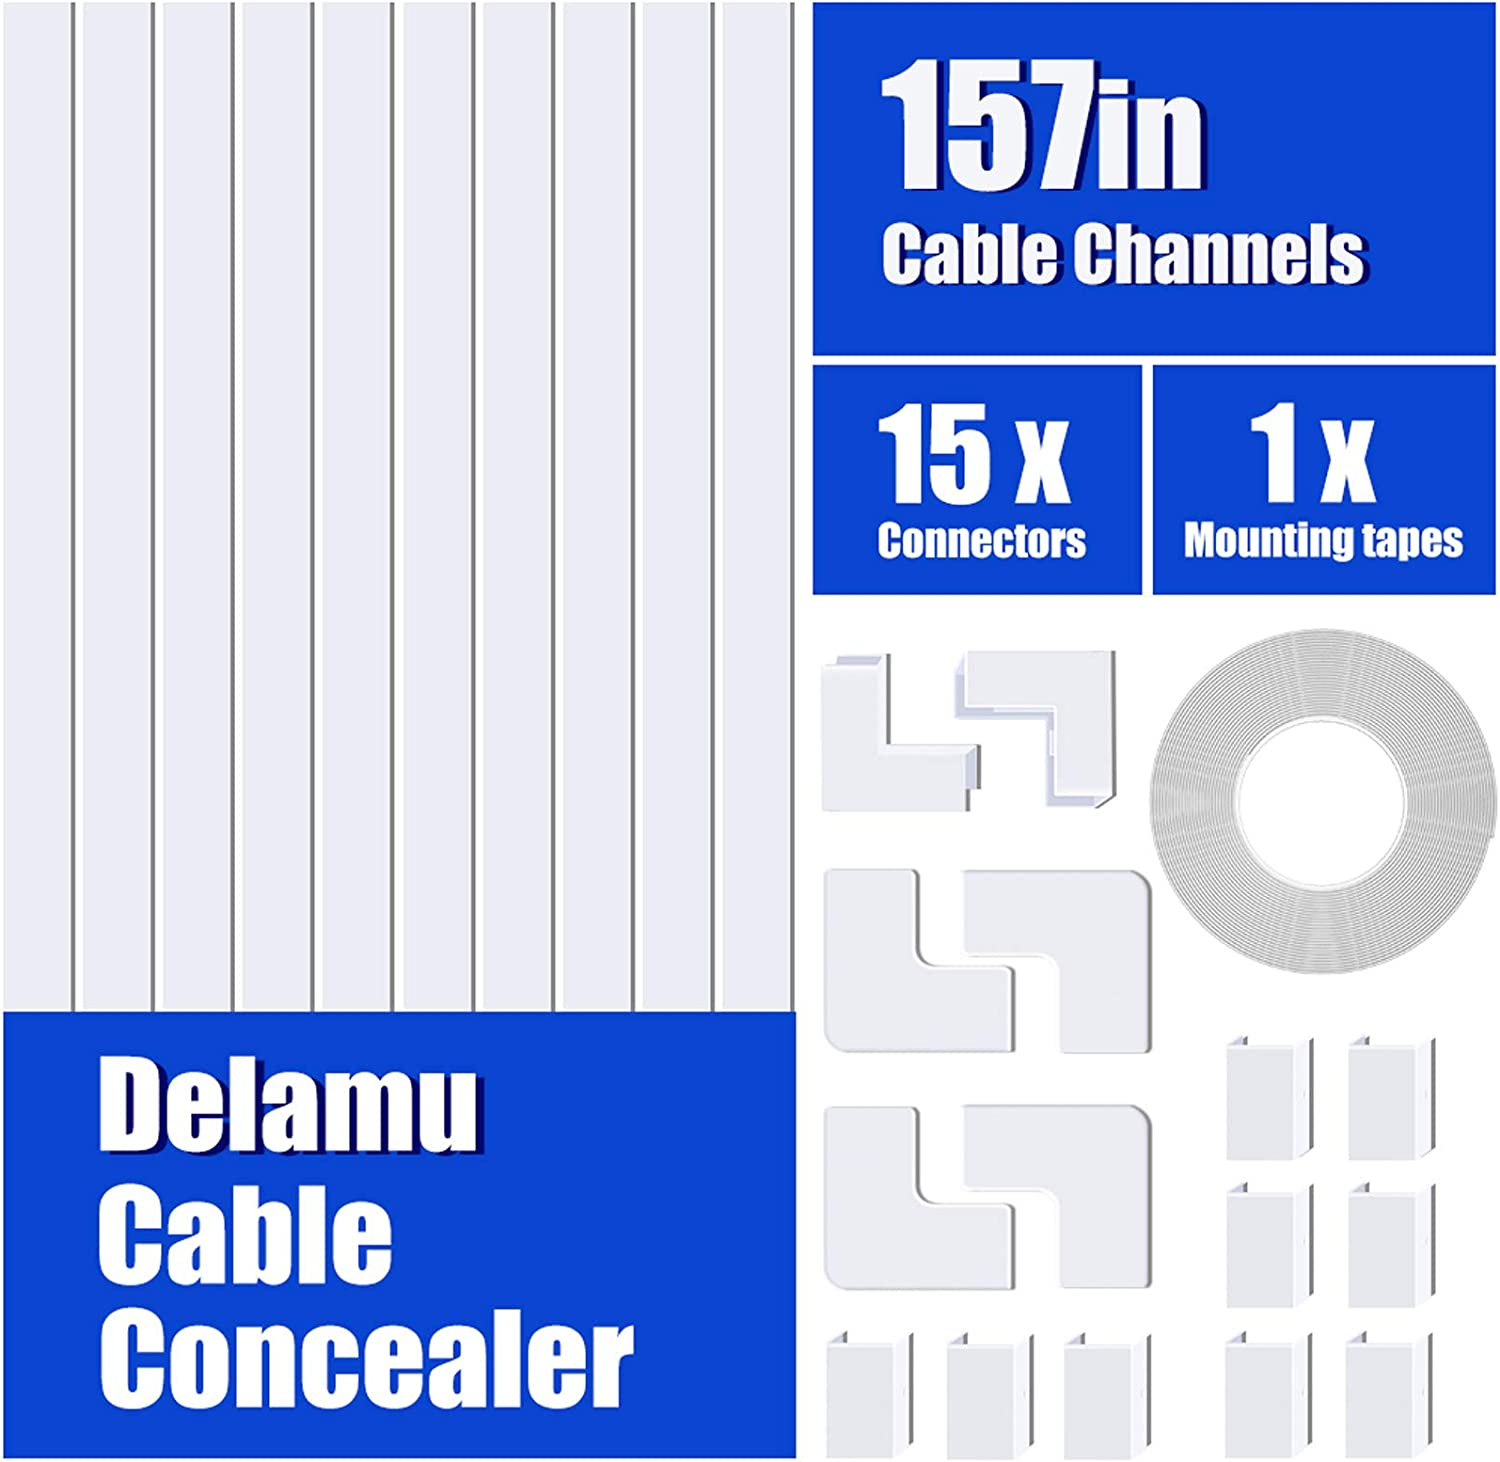 Speaker Wire or TV Cables in Home or Office 10X L15.7in Paintable Wire Channel to Hide a Single Power Cord CC03 Brown H0.4in One-Cord Cable Concealer W0.59in 157in Cord Cover PVC Wire Molding